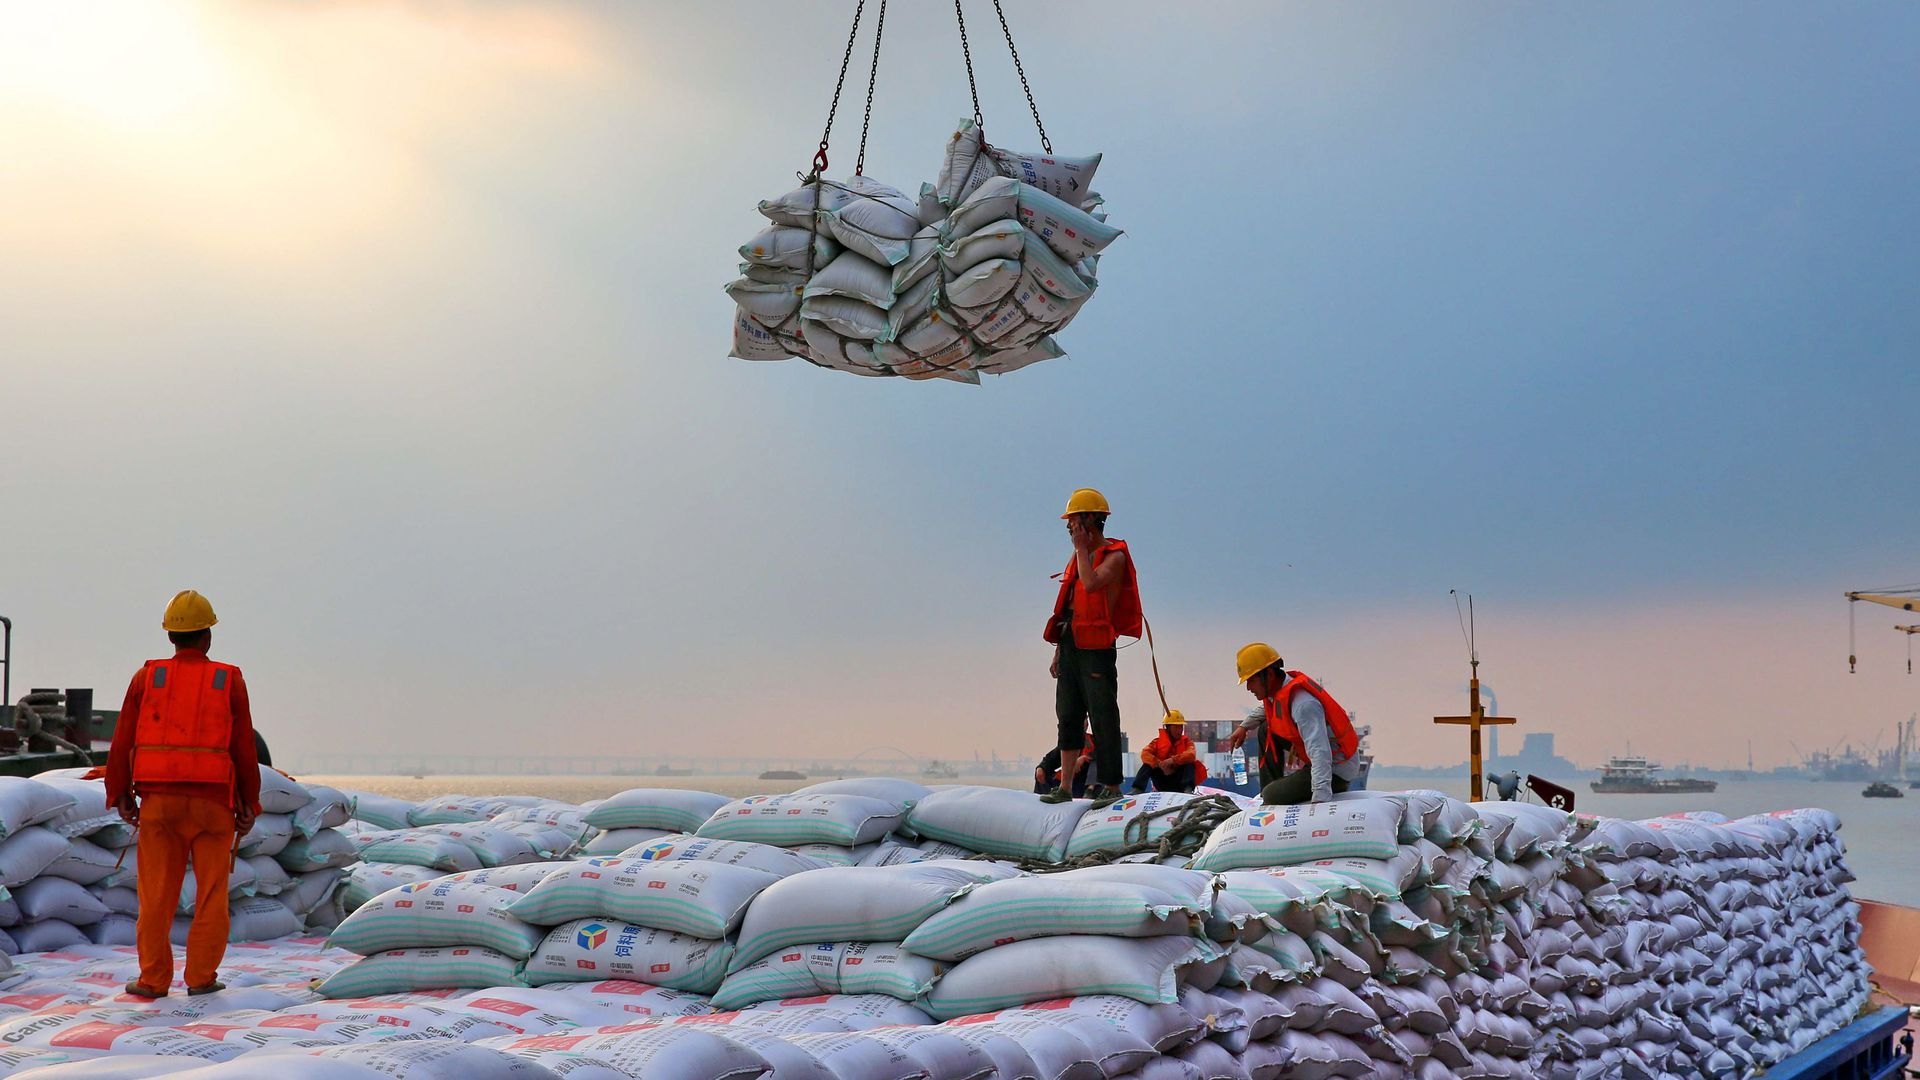 Workers unloading bags of soybeans at a port in China